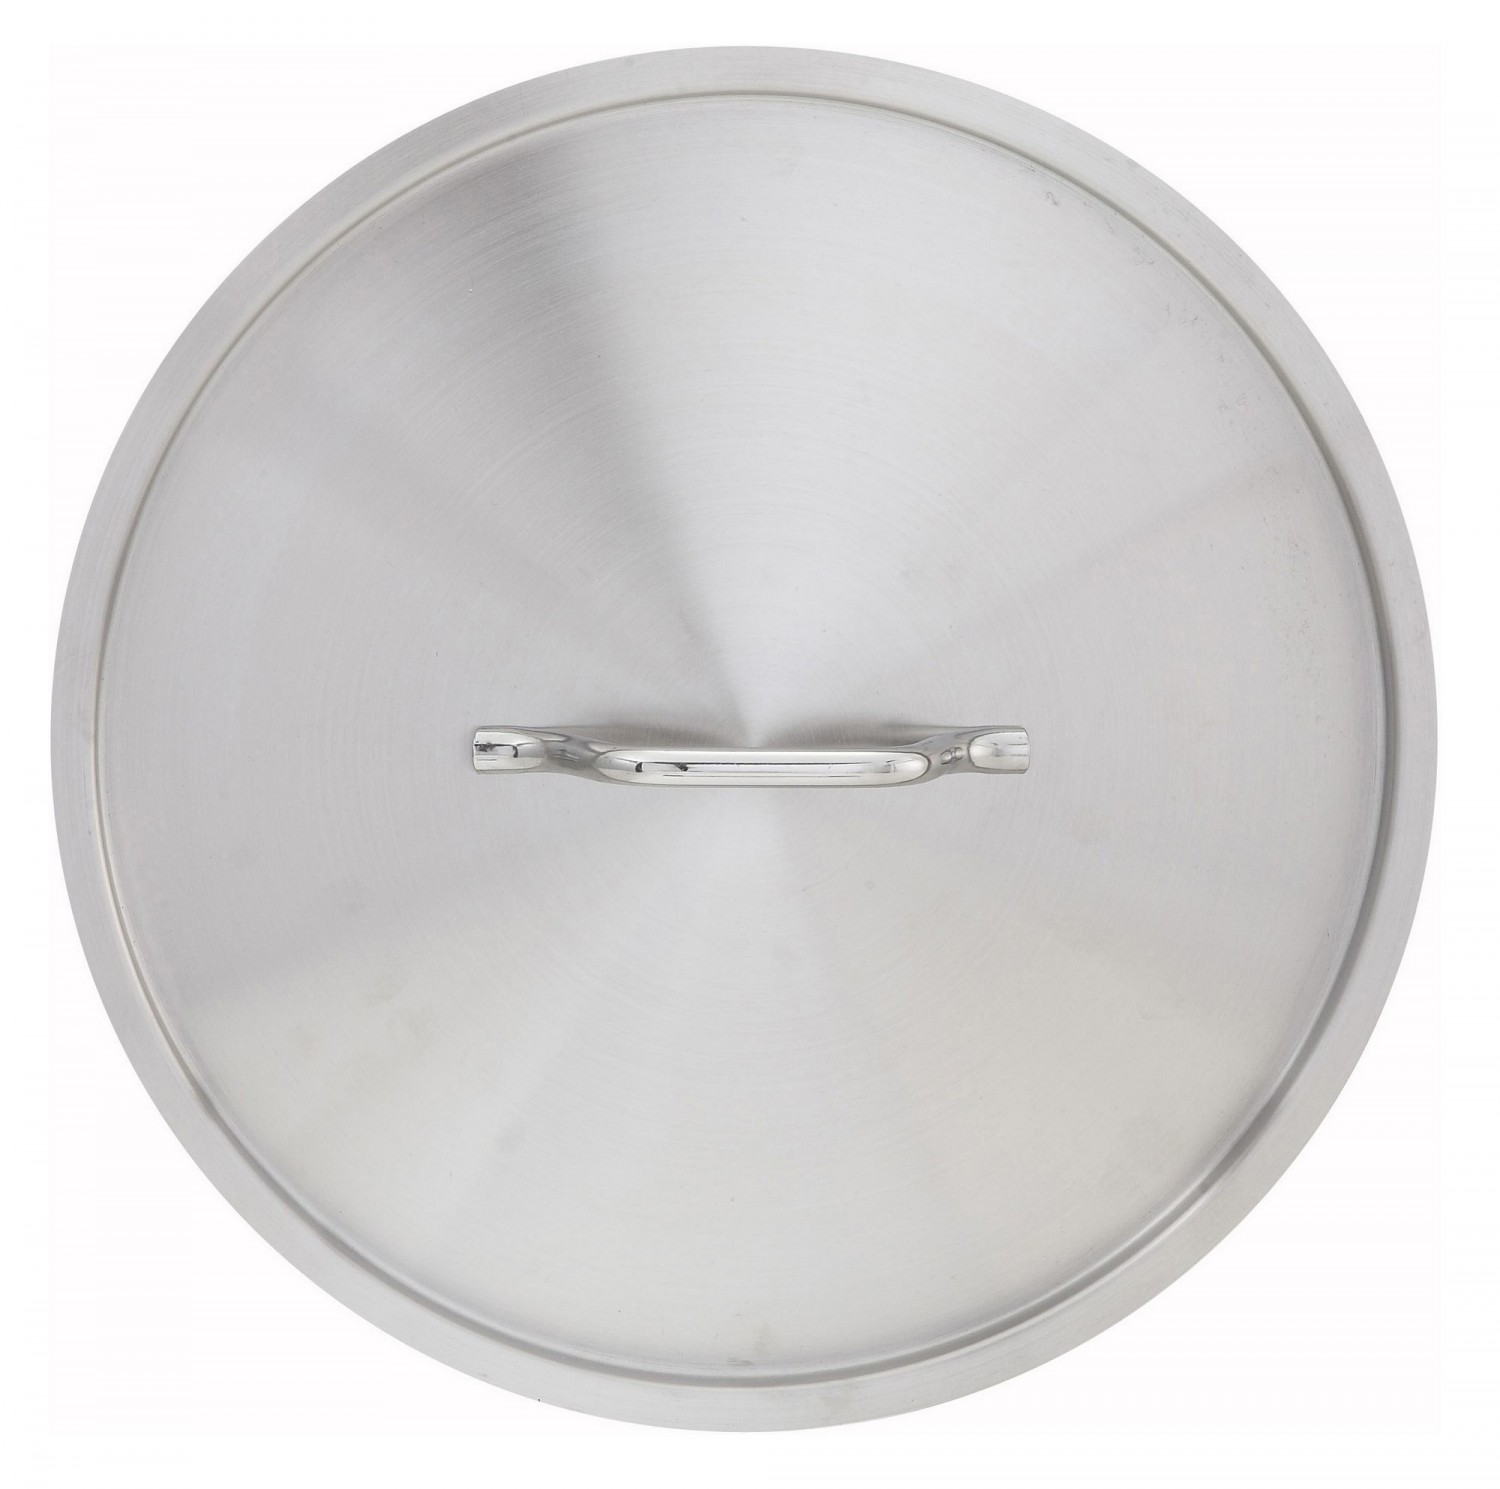 Winco SSTC-24 Stainless Steel Cover for SST-24